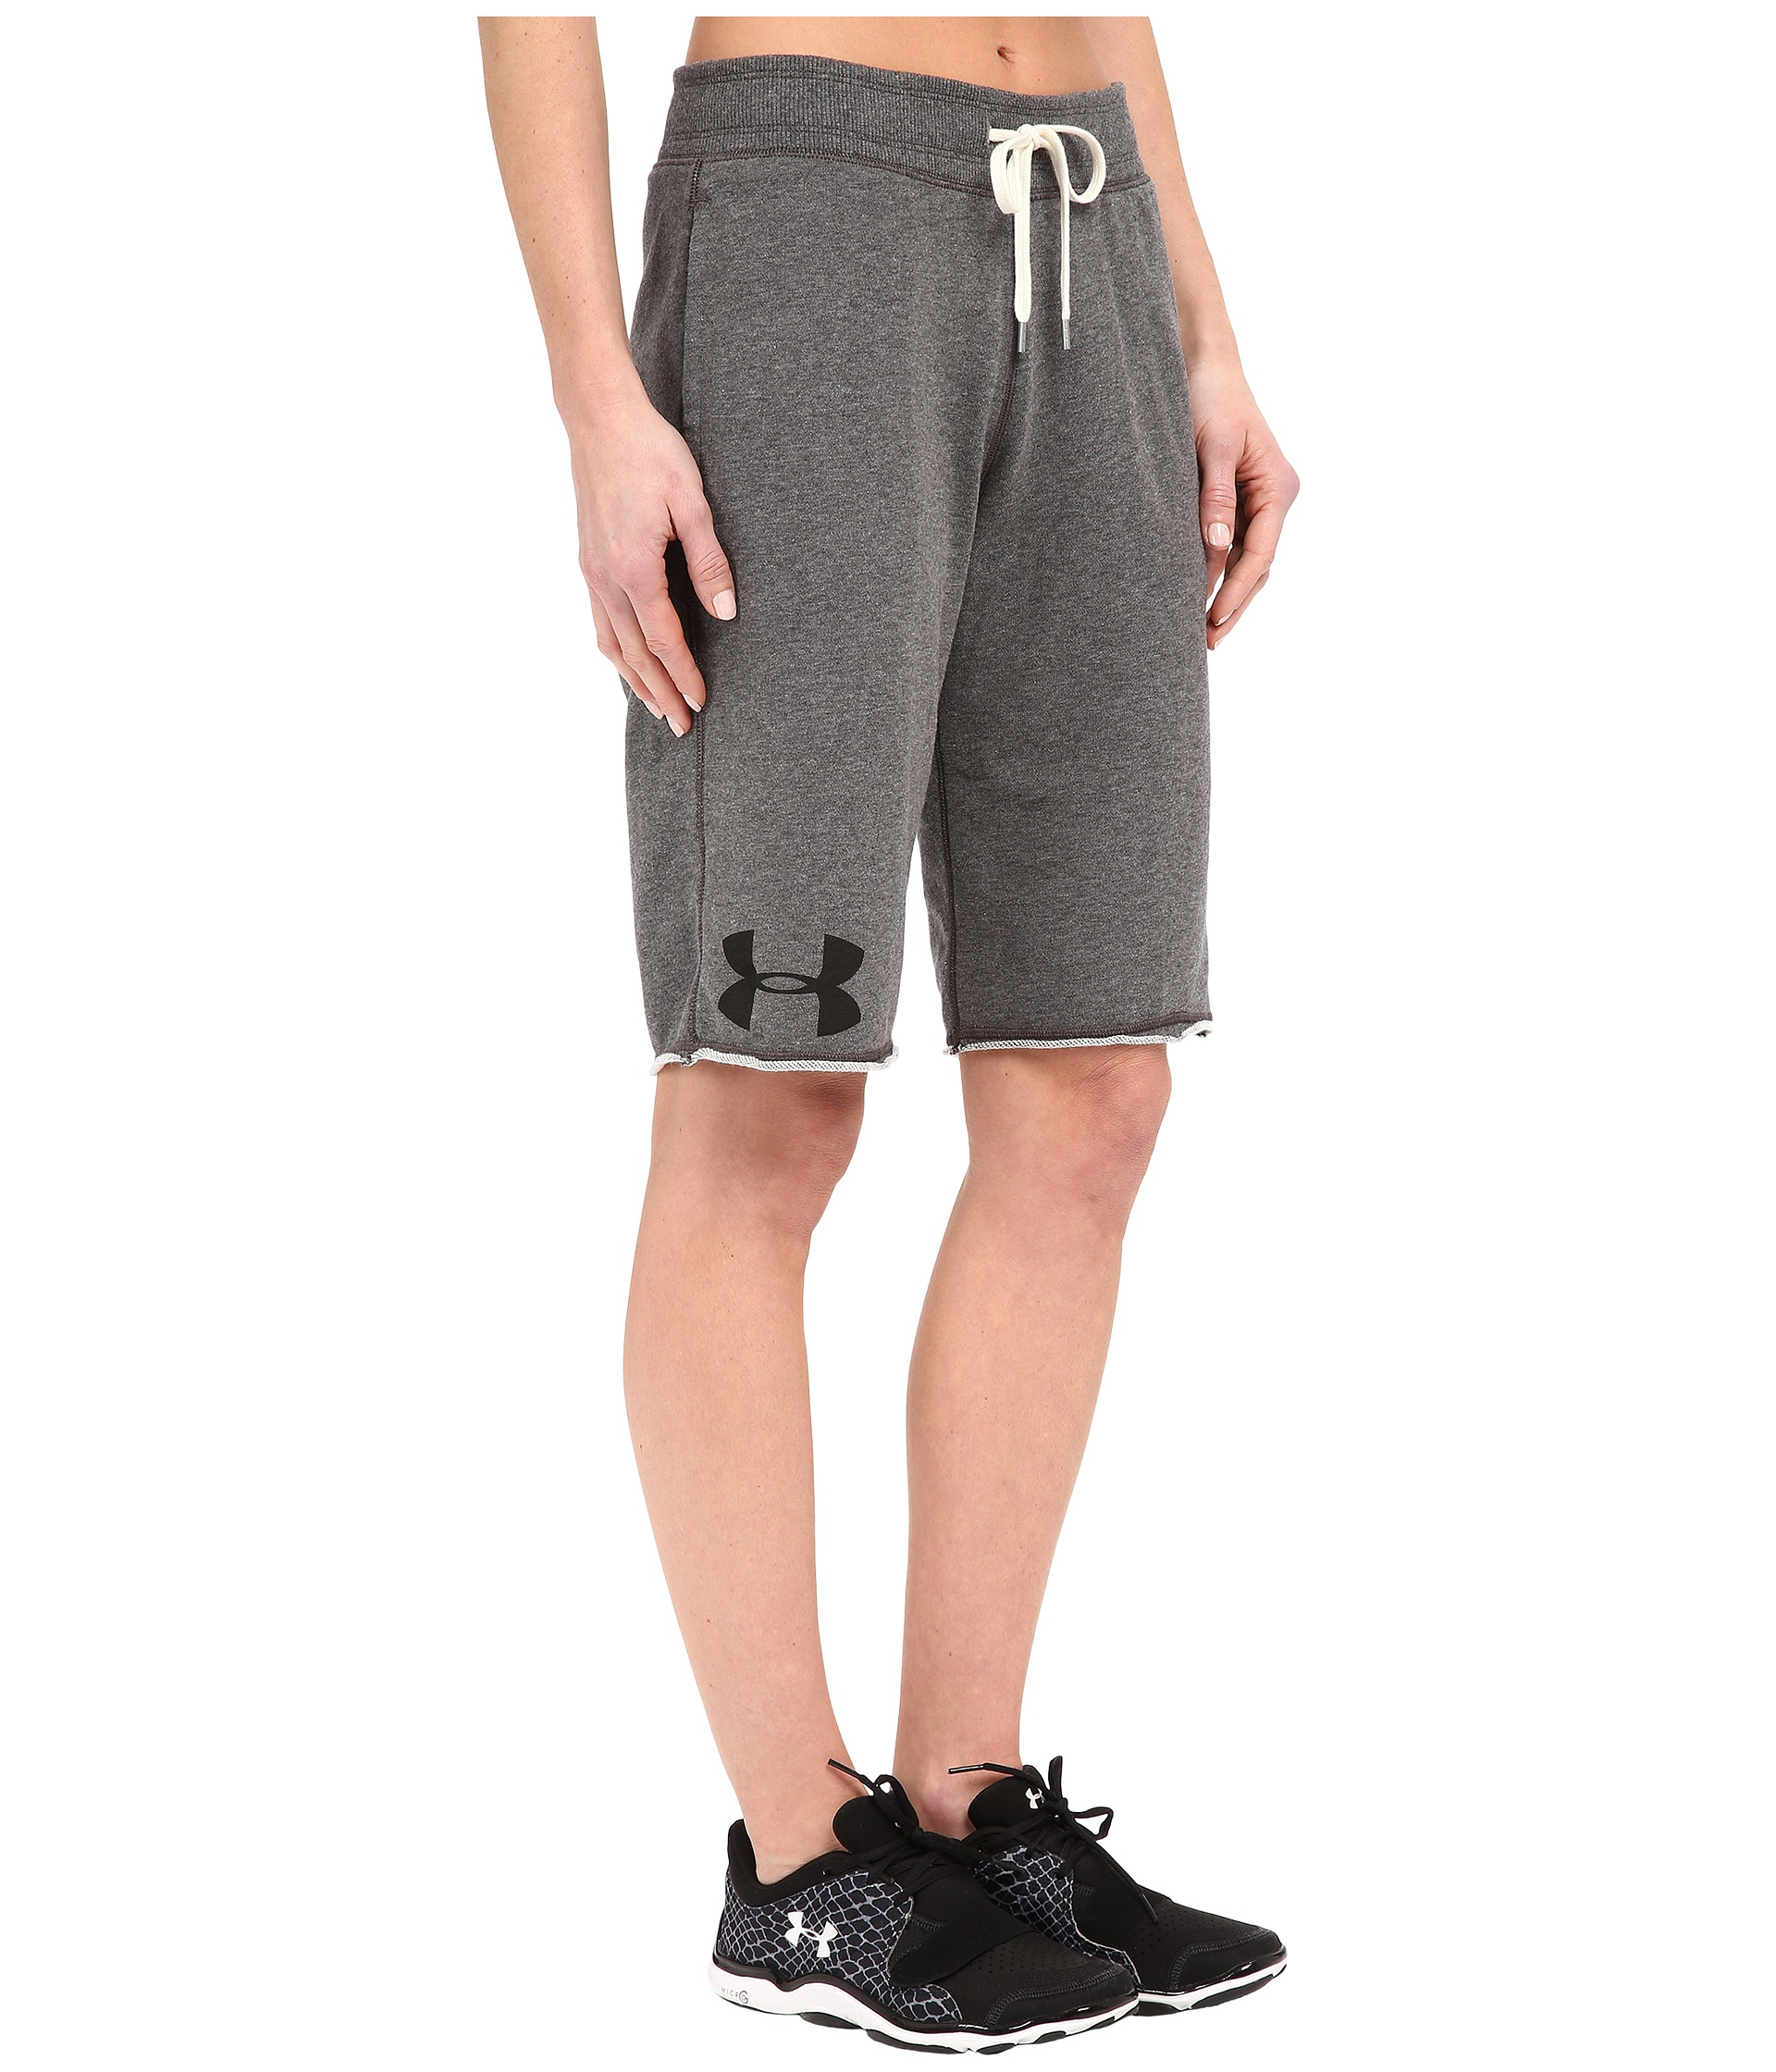 Lyst - Under Armour Favorite French Terry Boyshorts in Gray 0d4a509309b2